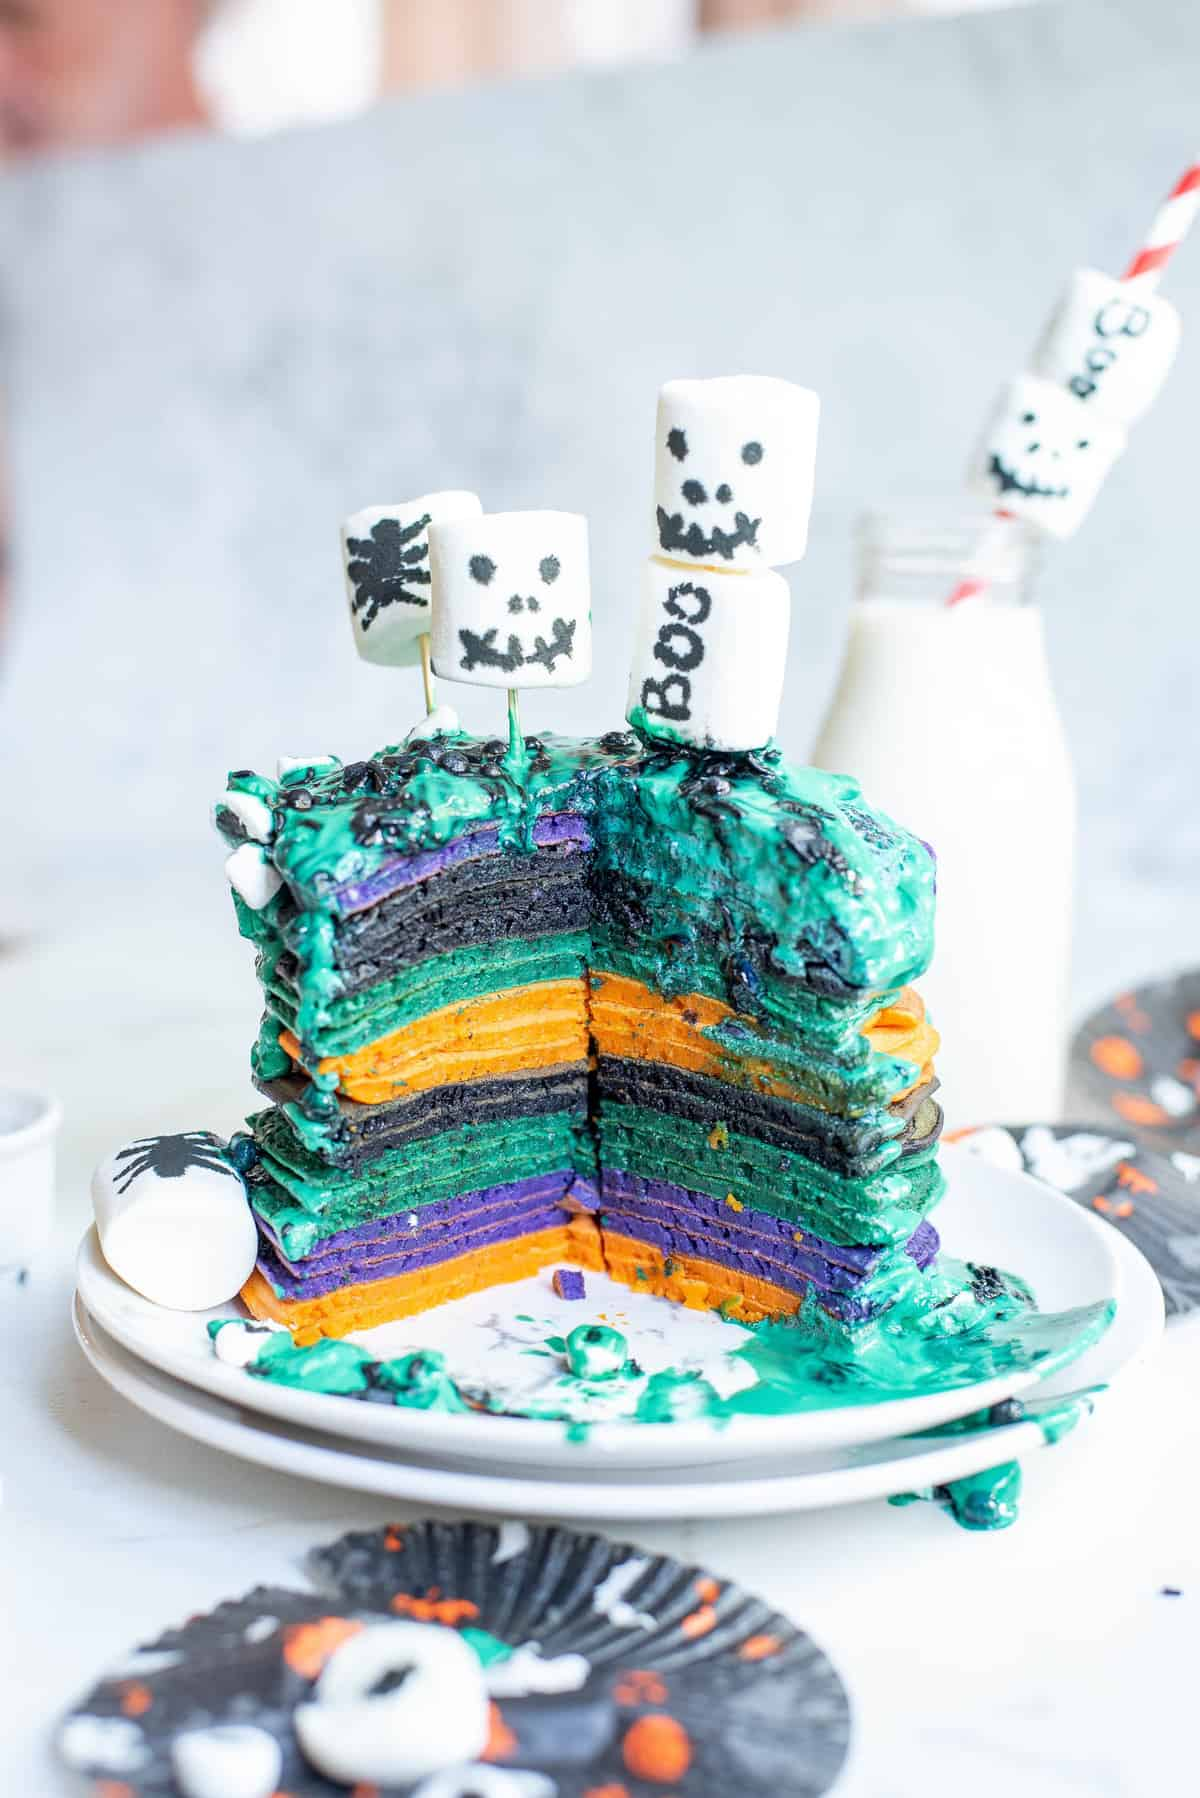 Stack of pancakes, cut to show colorful pancakes.